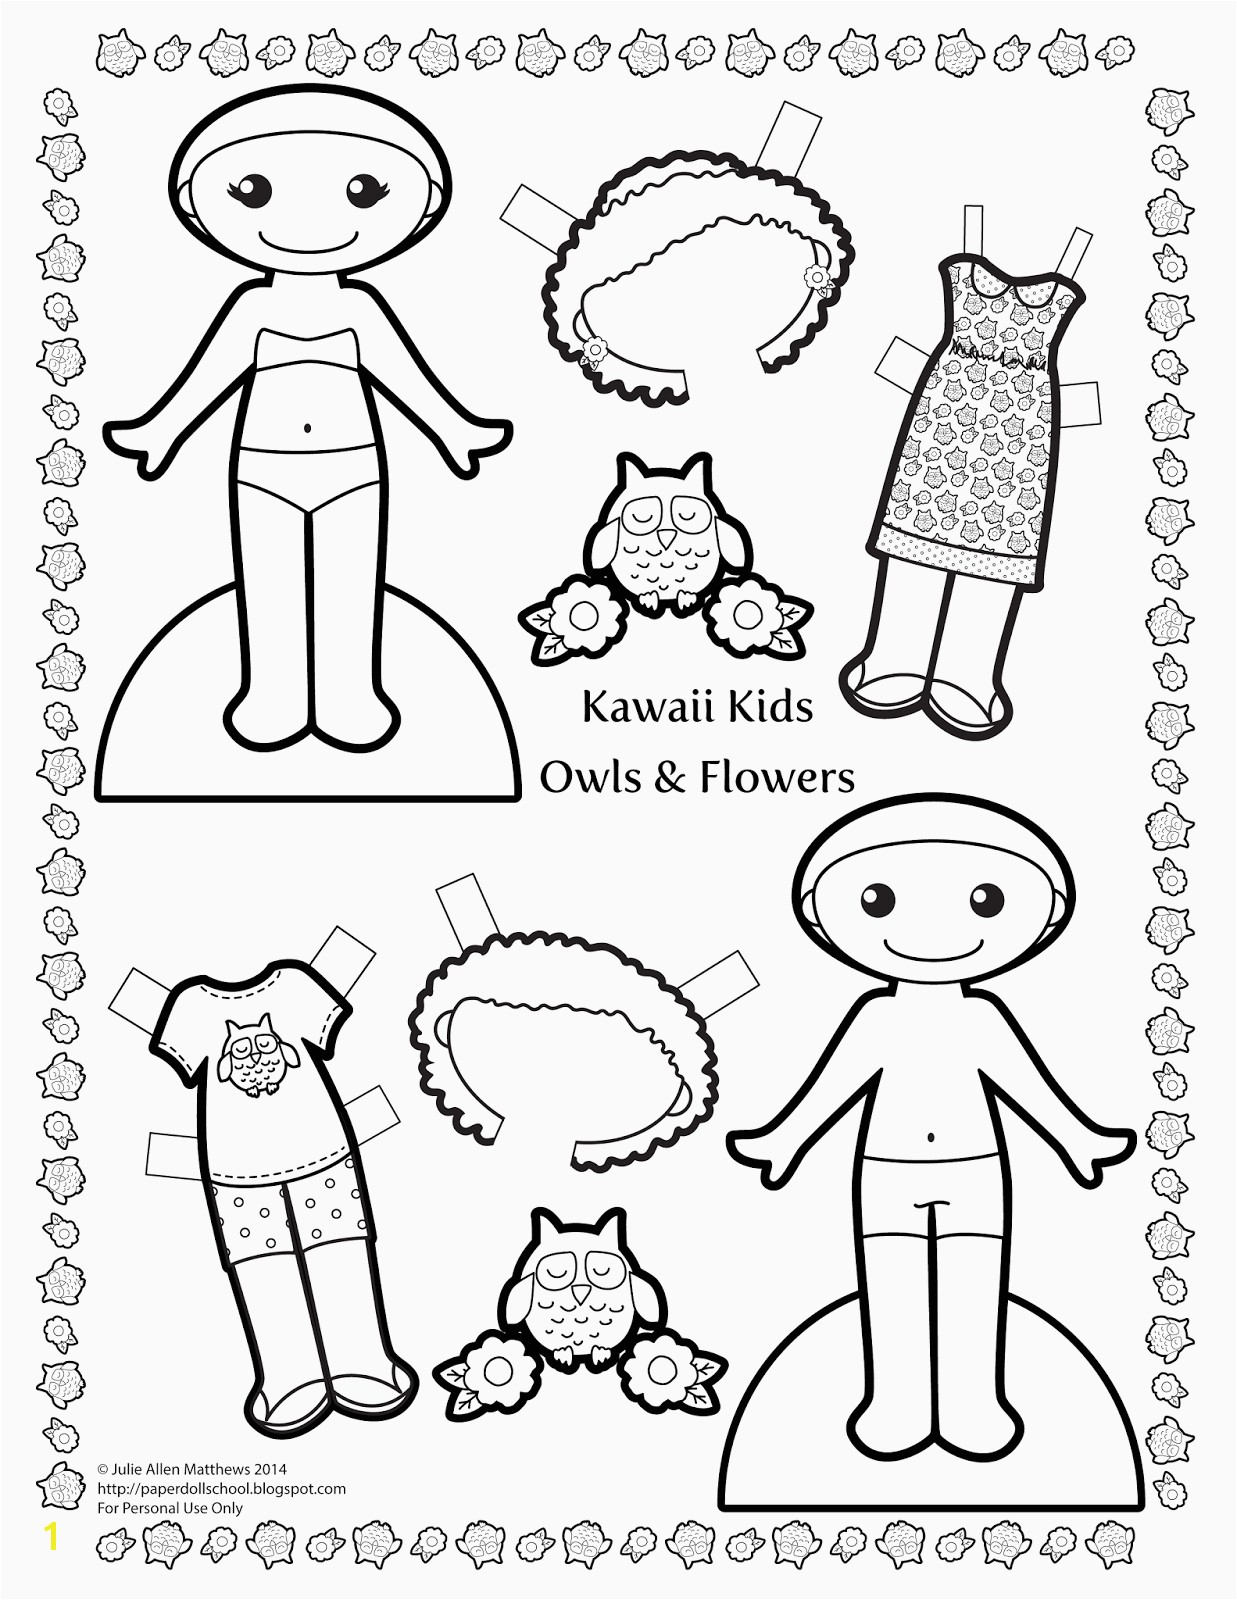 Felt Coloring Pages Unique Felt Coloring Pages Unique Oh Peppa Pig And Her Family How To